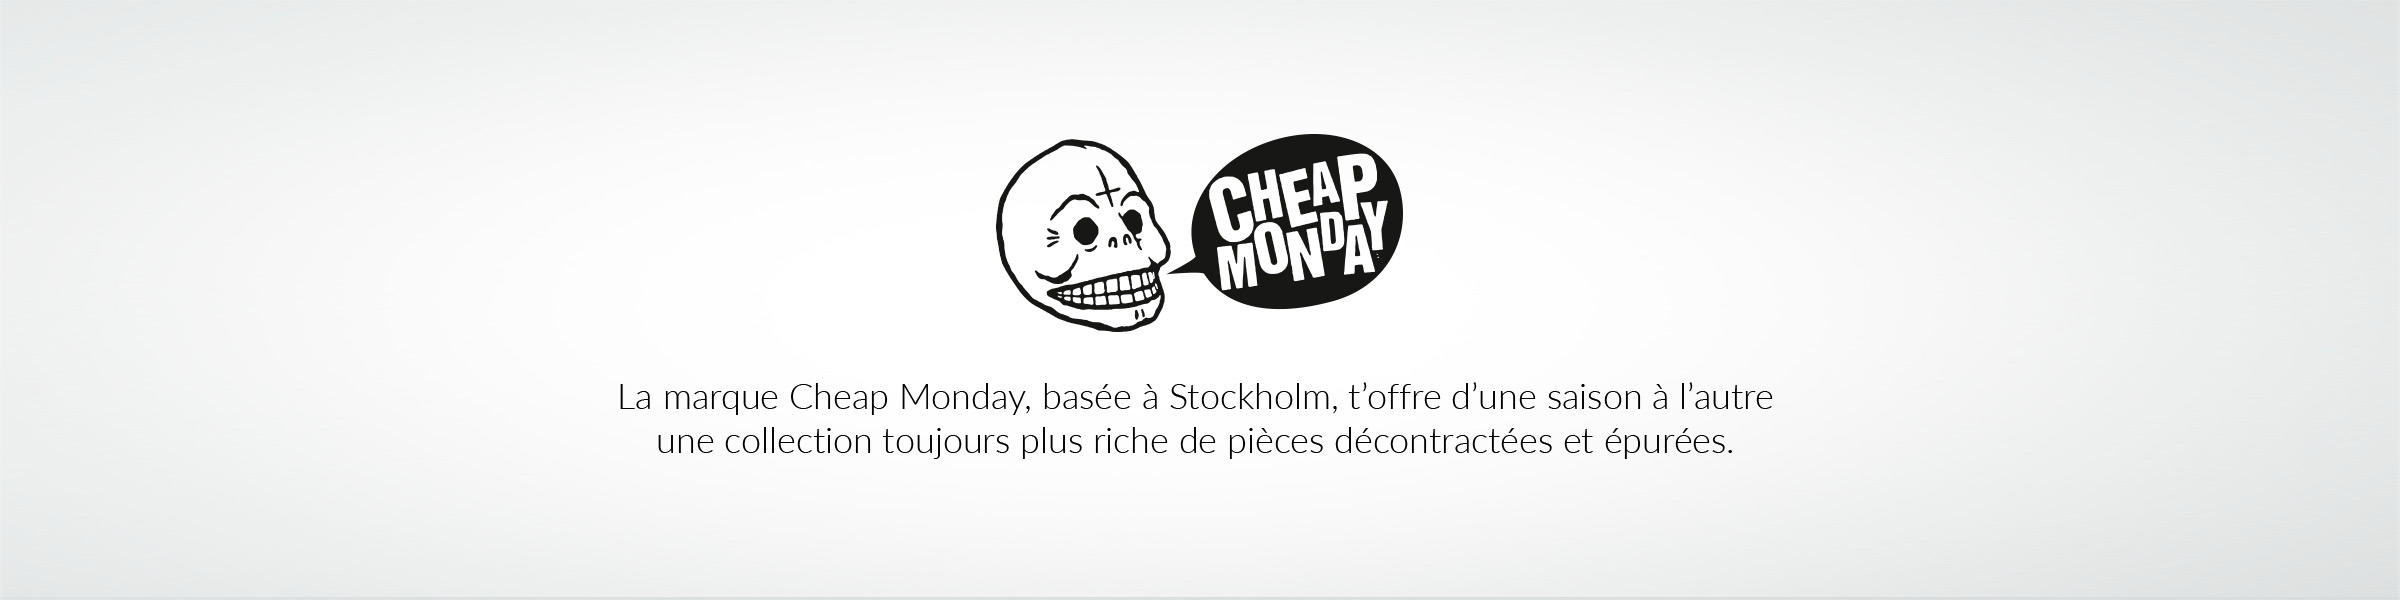 030360 Cheap Monday